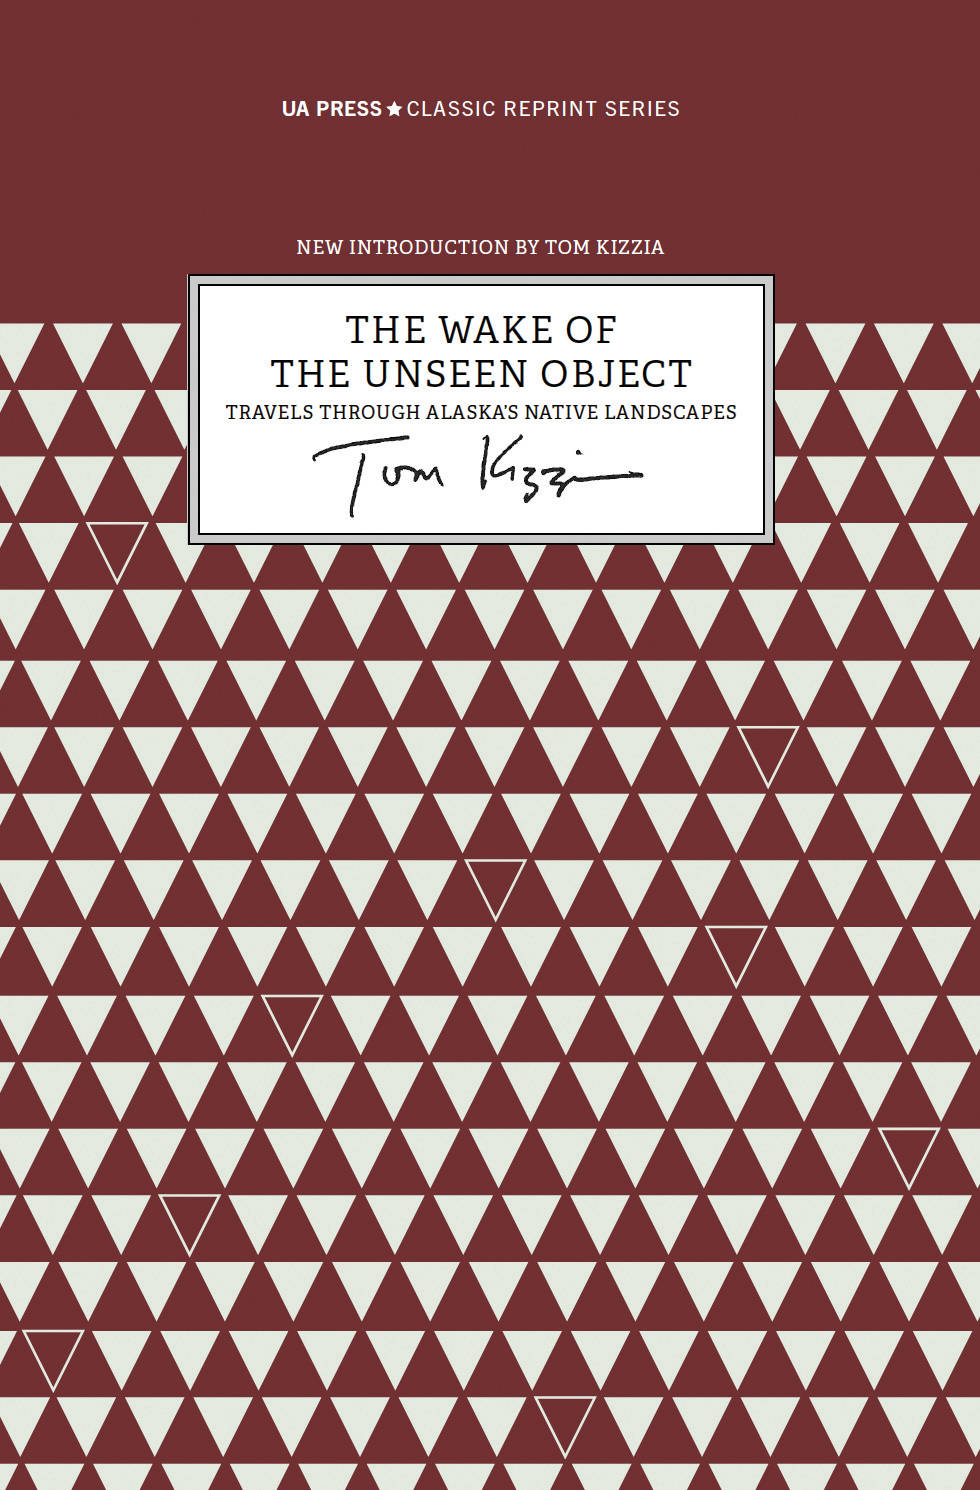 """The cover of the reprint of Tom Kizzia's """"The Wake of the Unseen Object."""" (Photo courtesy of University of Alaska Press)"""